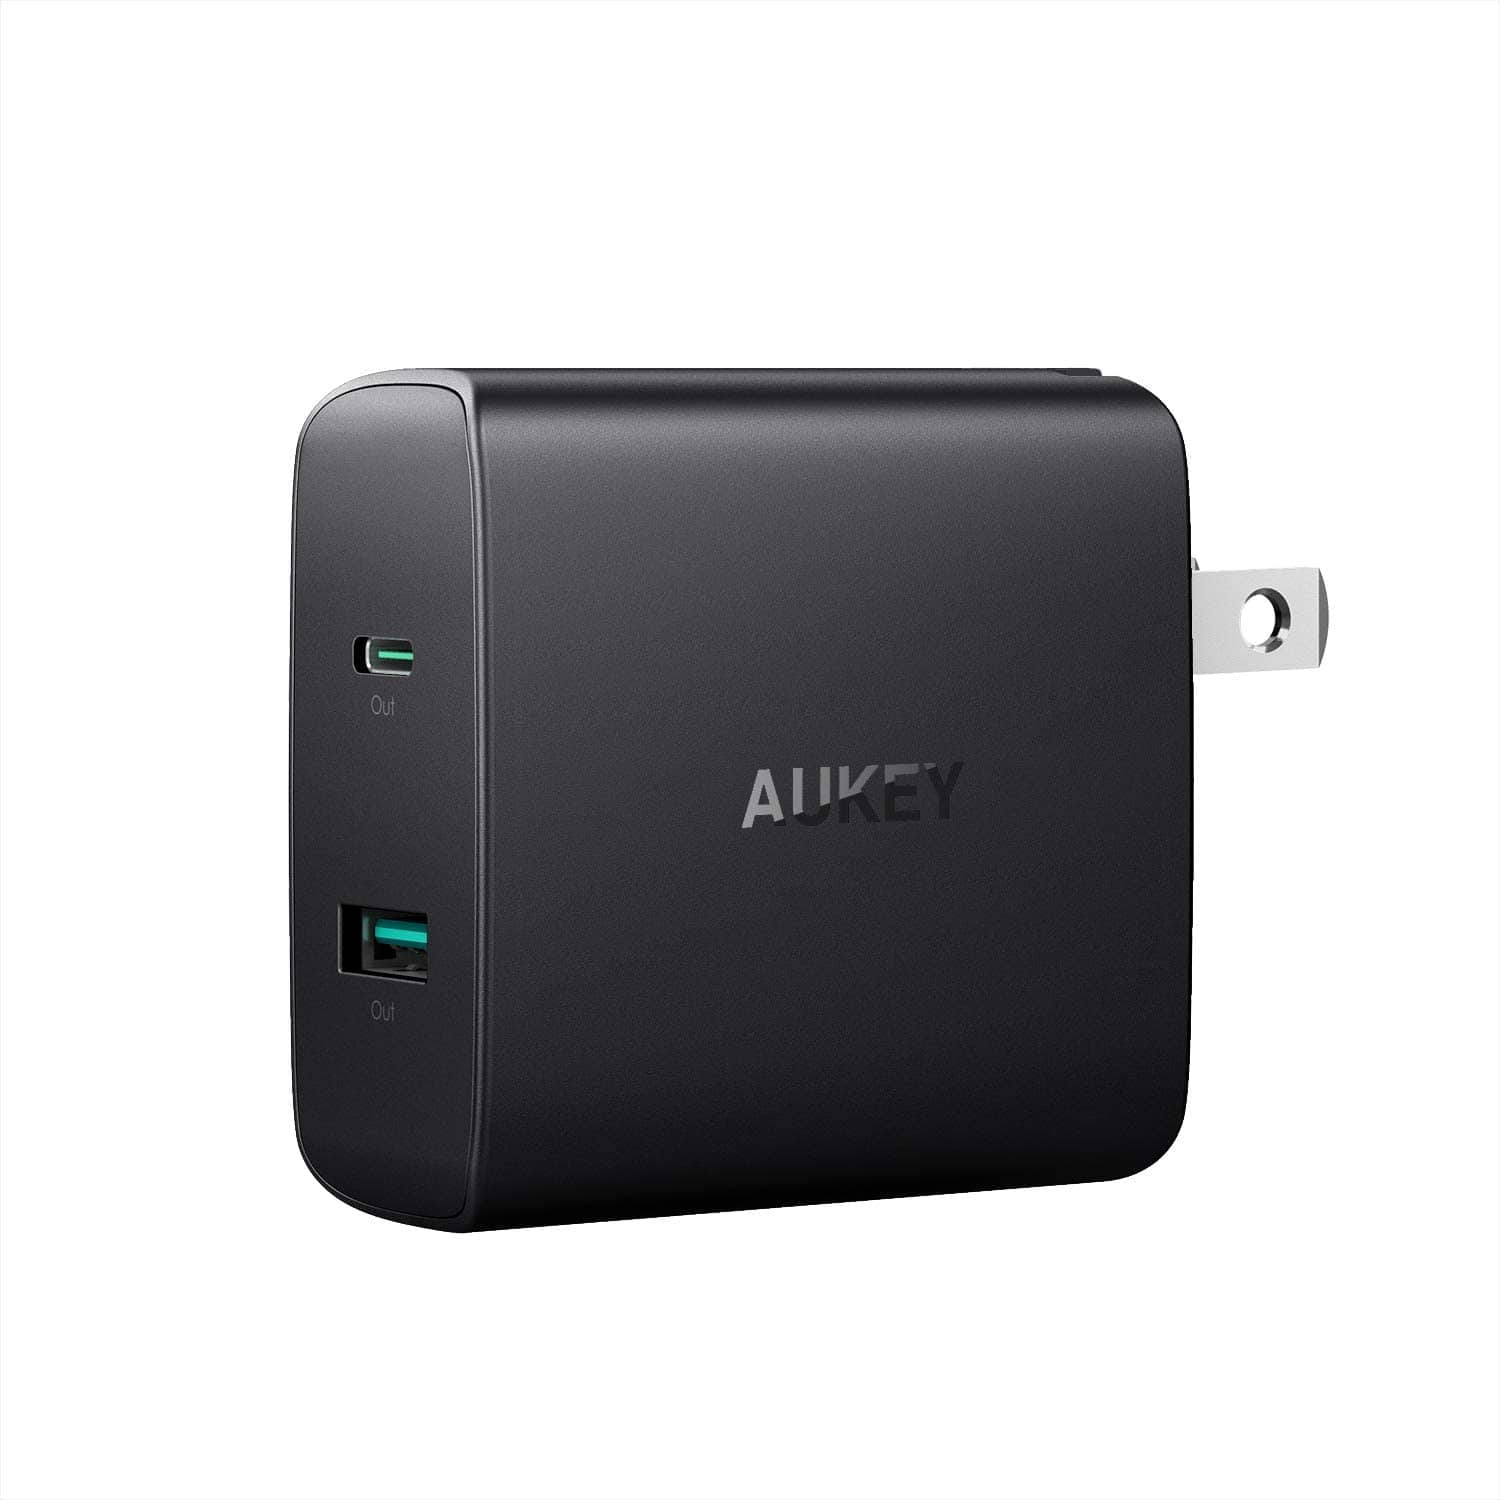 Aukey 56W Dual Port Fast Charger (46W USB C PD 3.0 + USB A) $16.80 + Free S&H